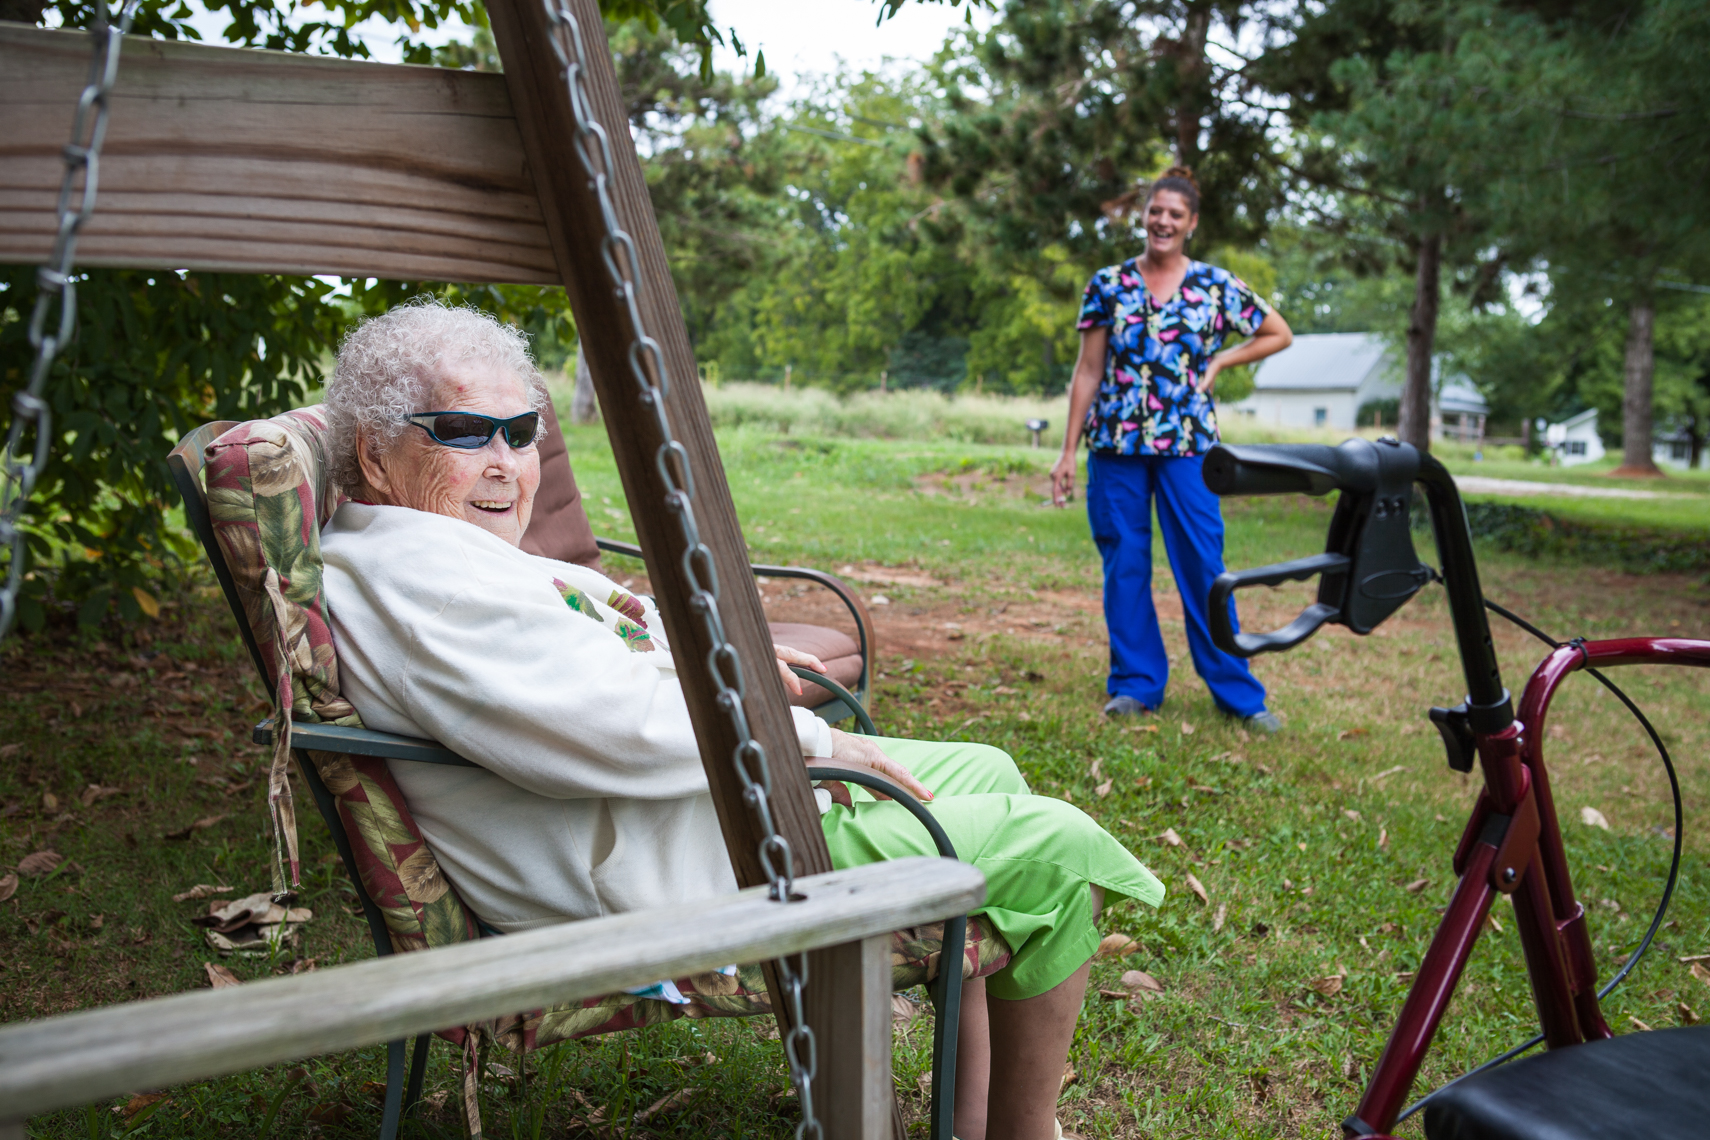 Elderly woman on a swing, wearing funny sunglasses, with her caregiver nearby. Smiling, laughing, happy.